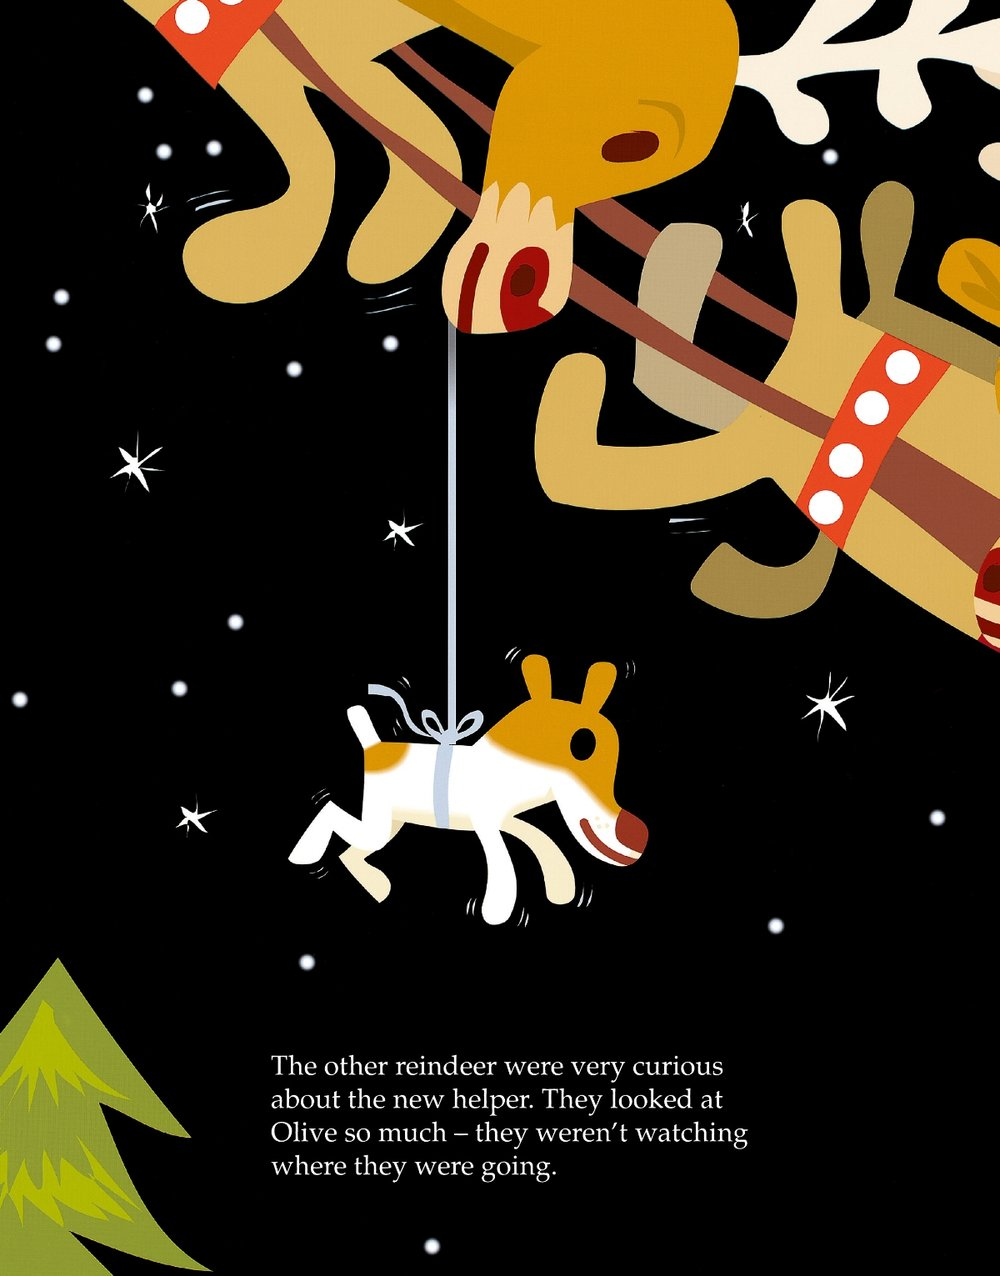 Pages from Olive the Other Reindeer_Interior-3.jpg